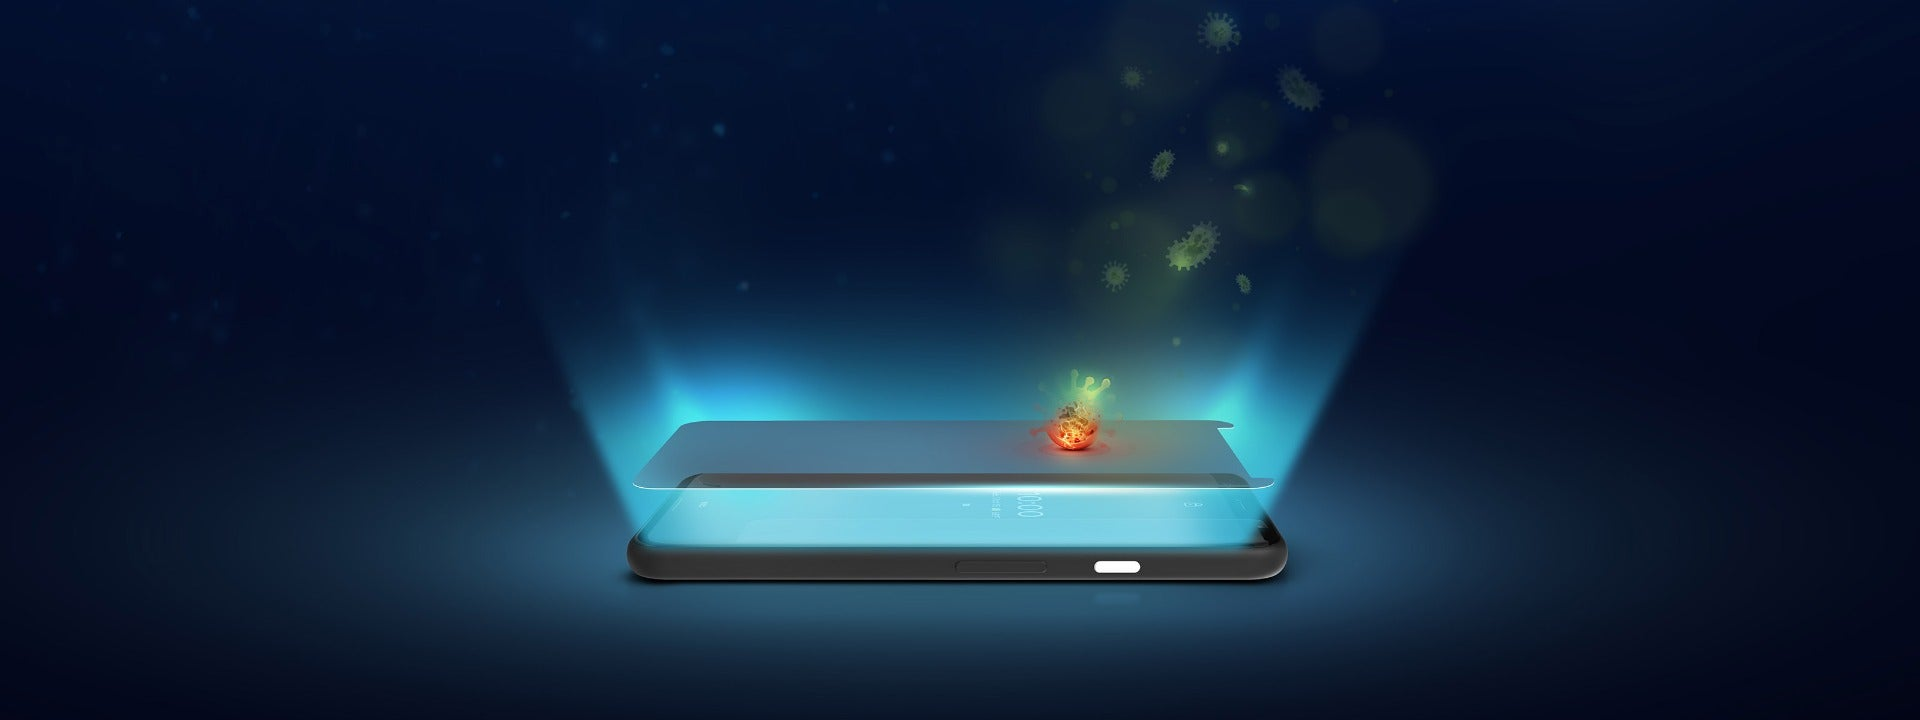 InvisibleShield screen protecting against blue light and bacteria